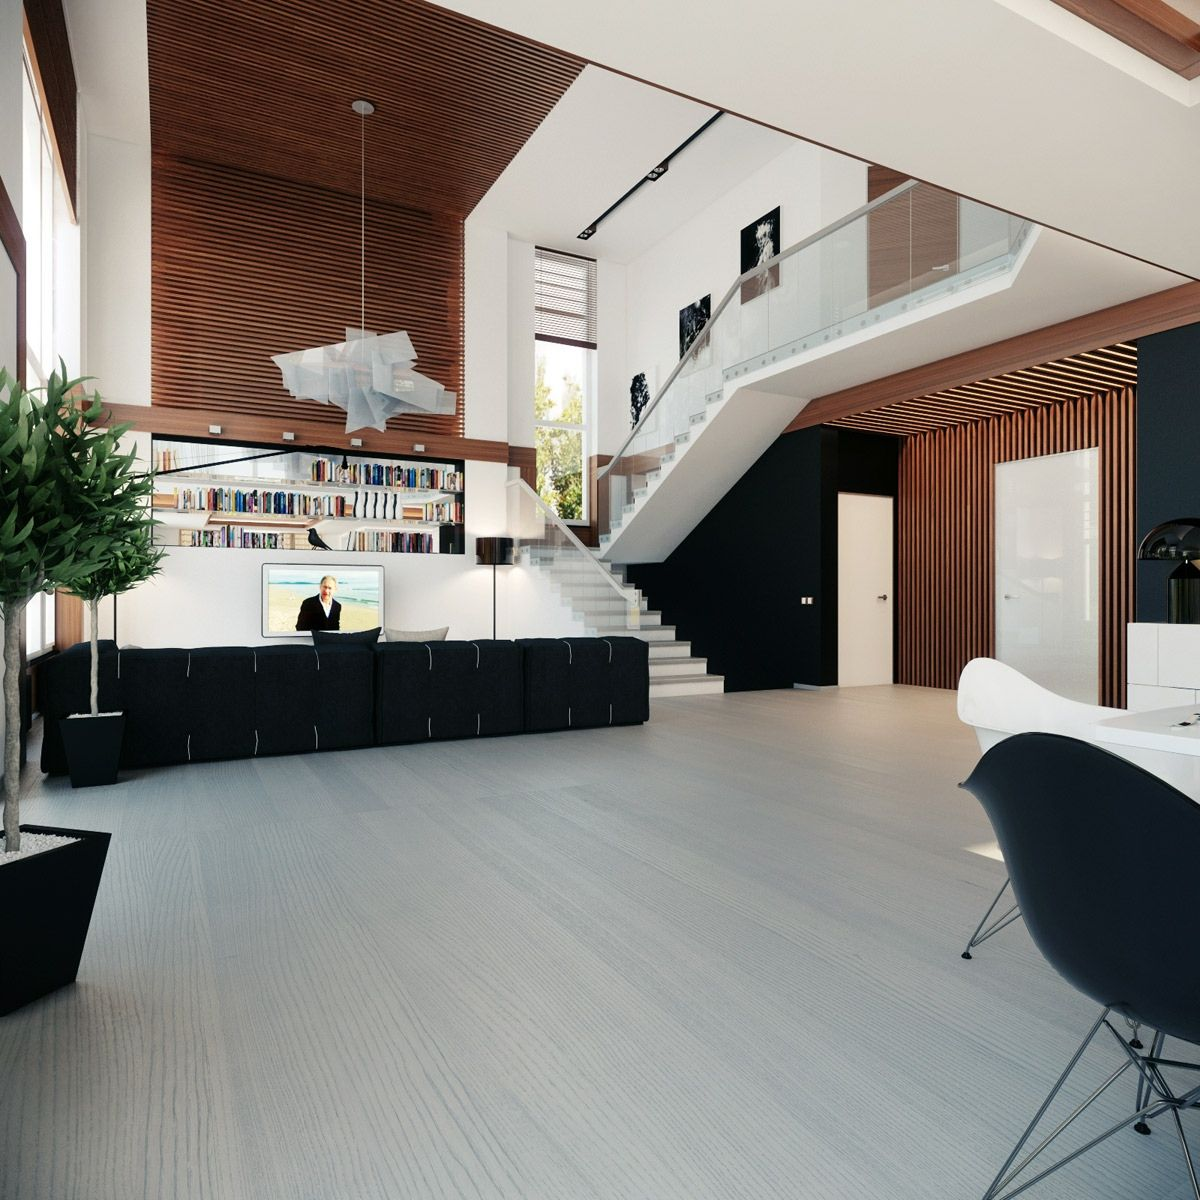 interior design room plan - 1000+ images about Office Interiors on Pinterest Office ...